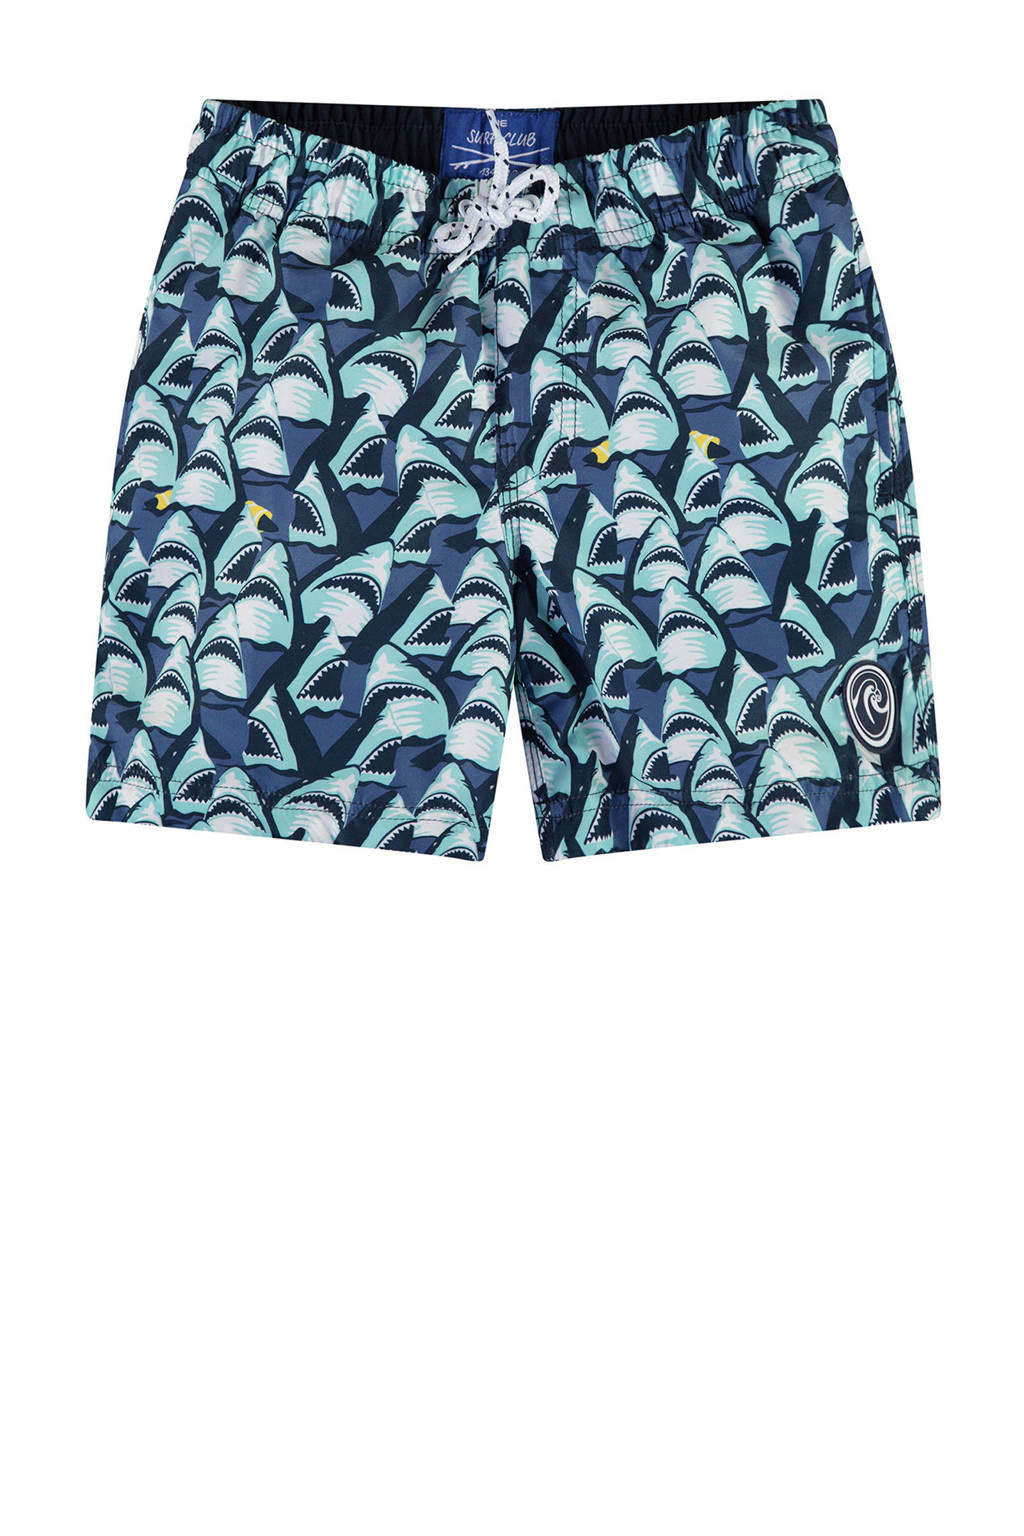 a4fa1d7c57549e WE Fashion zwemshort met all over haaienprint blauw, Medieval Blue